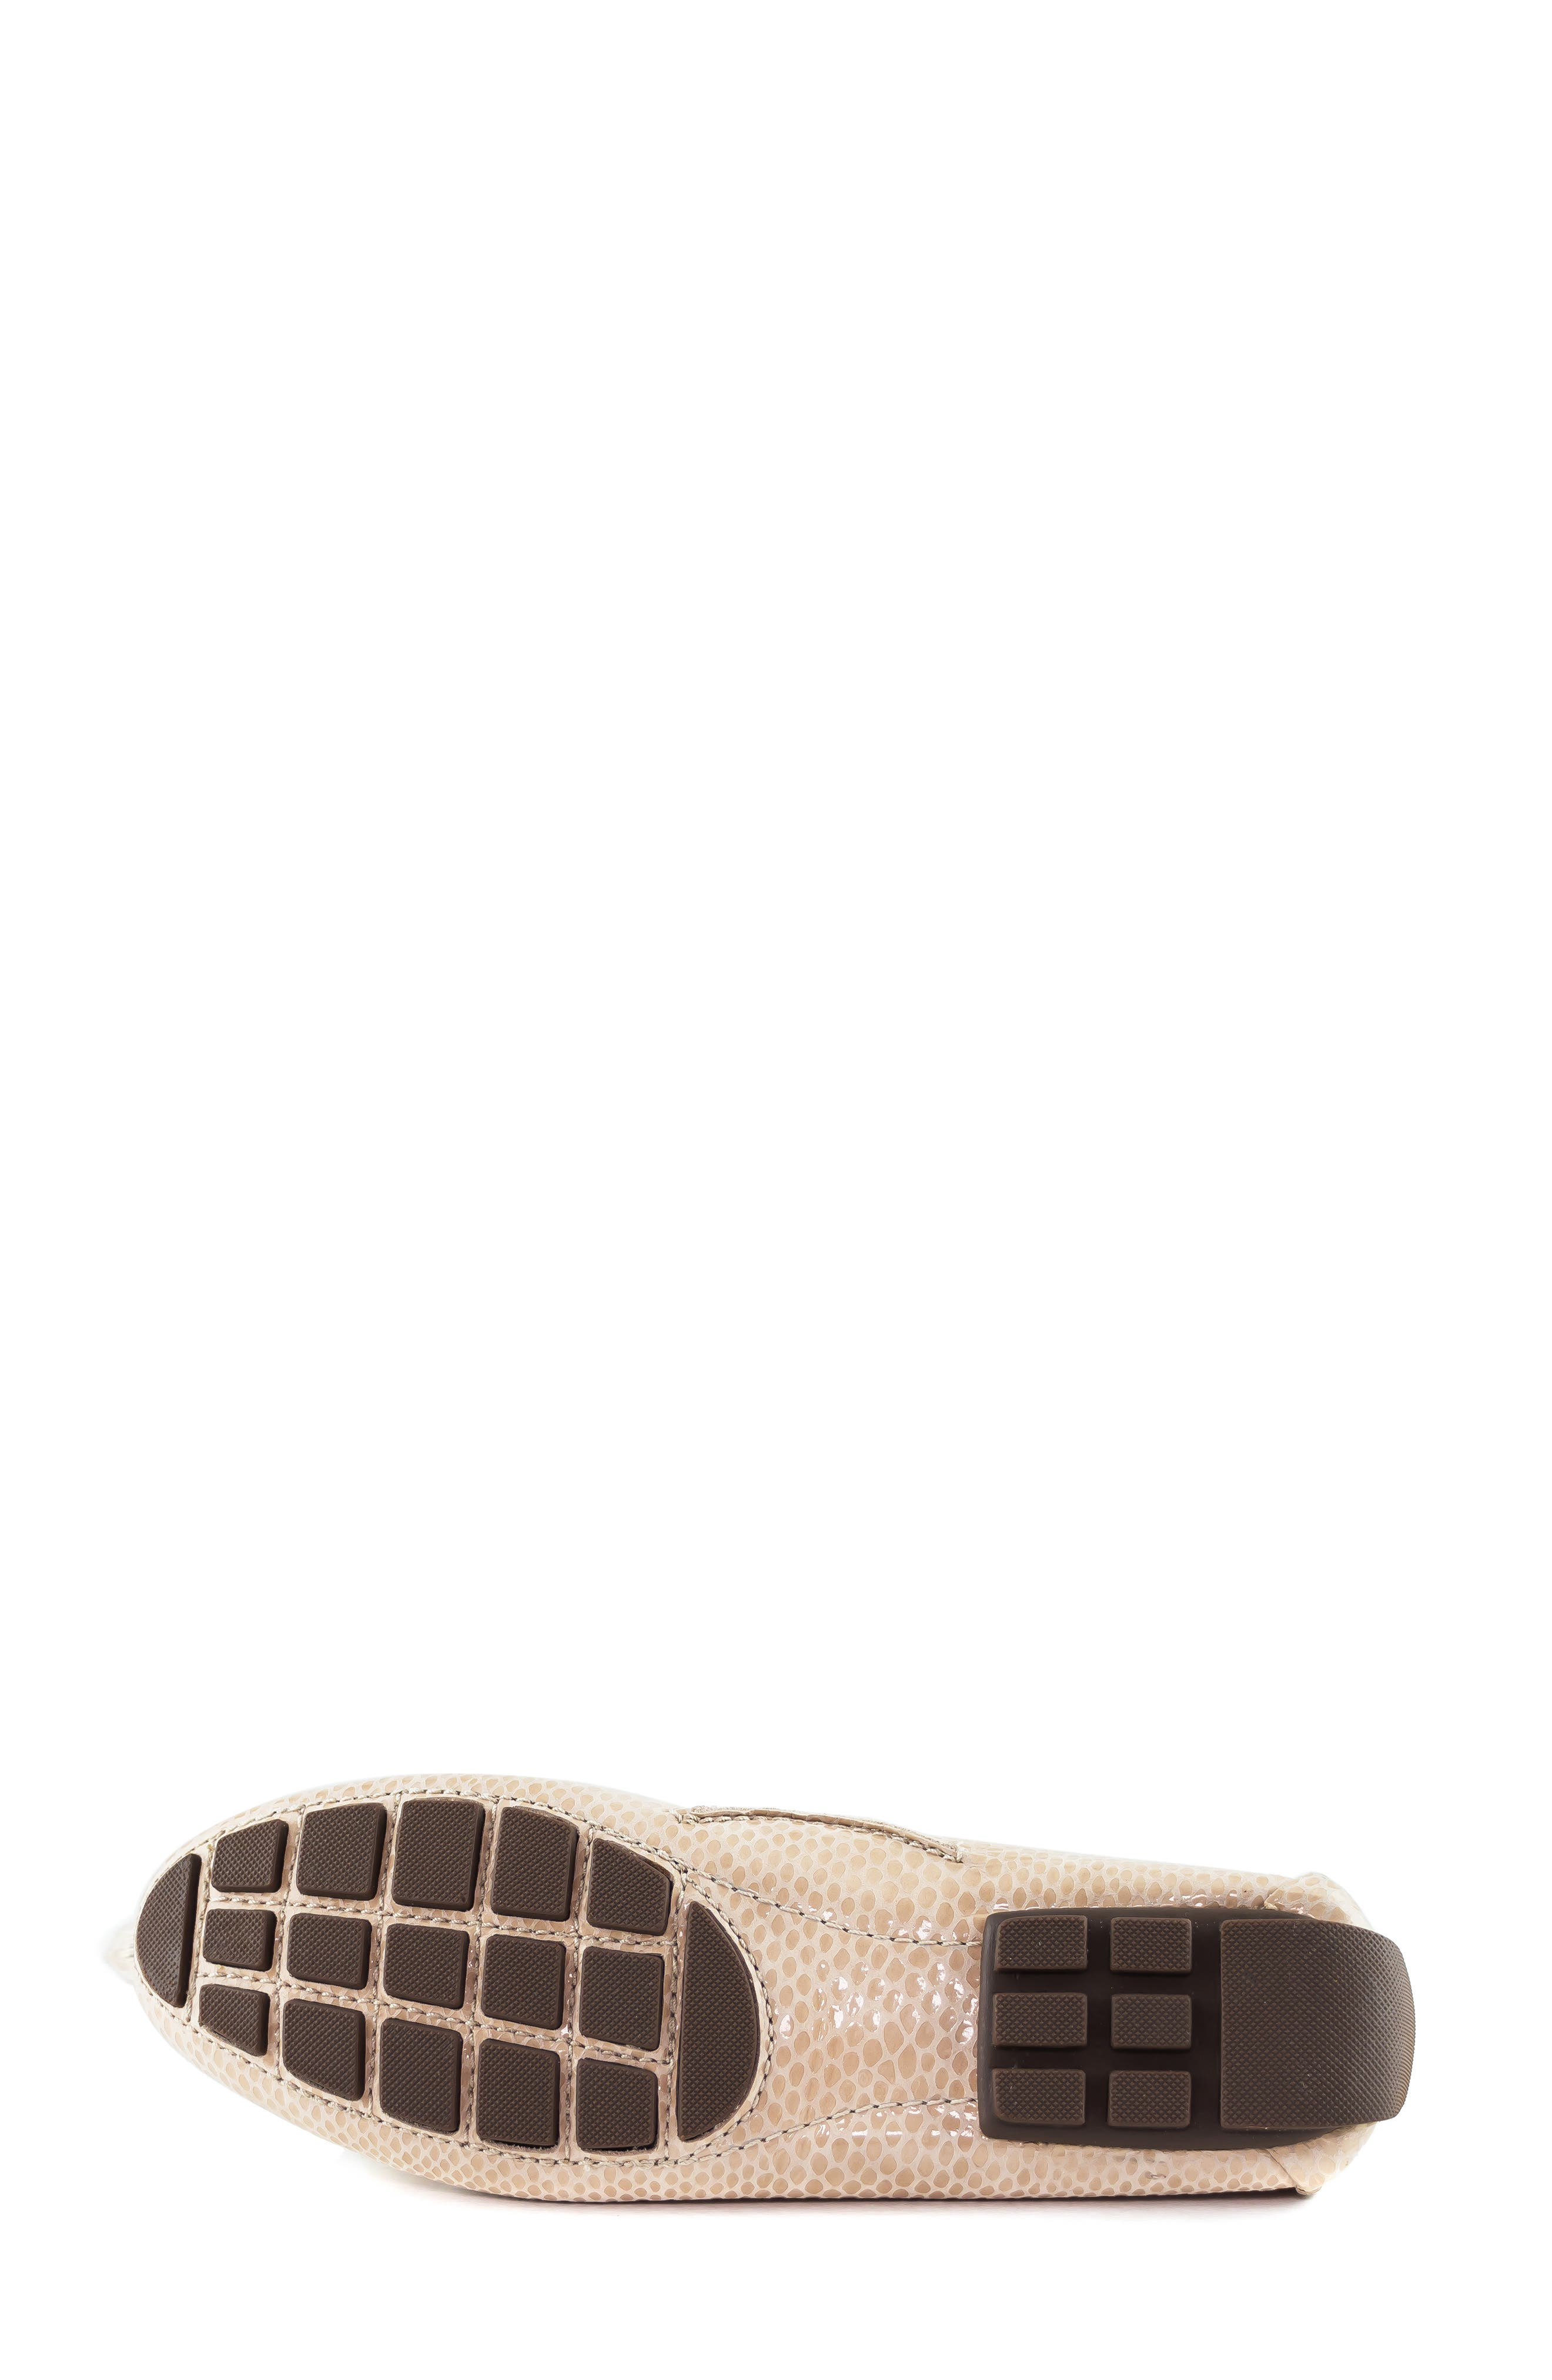 ,                             'Cypress Hill' Loafer,                             Alternate thumbnail 6, color,                             BLUSH SNAKE PRINT LEATHER